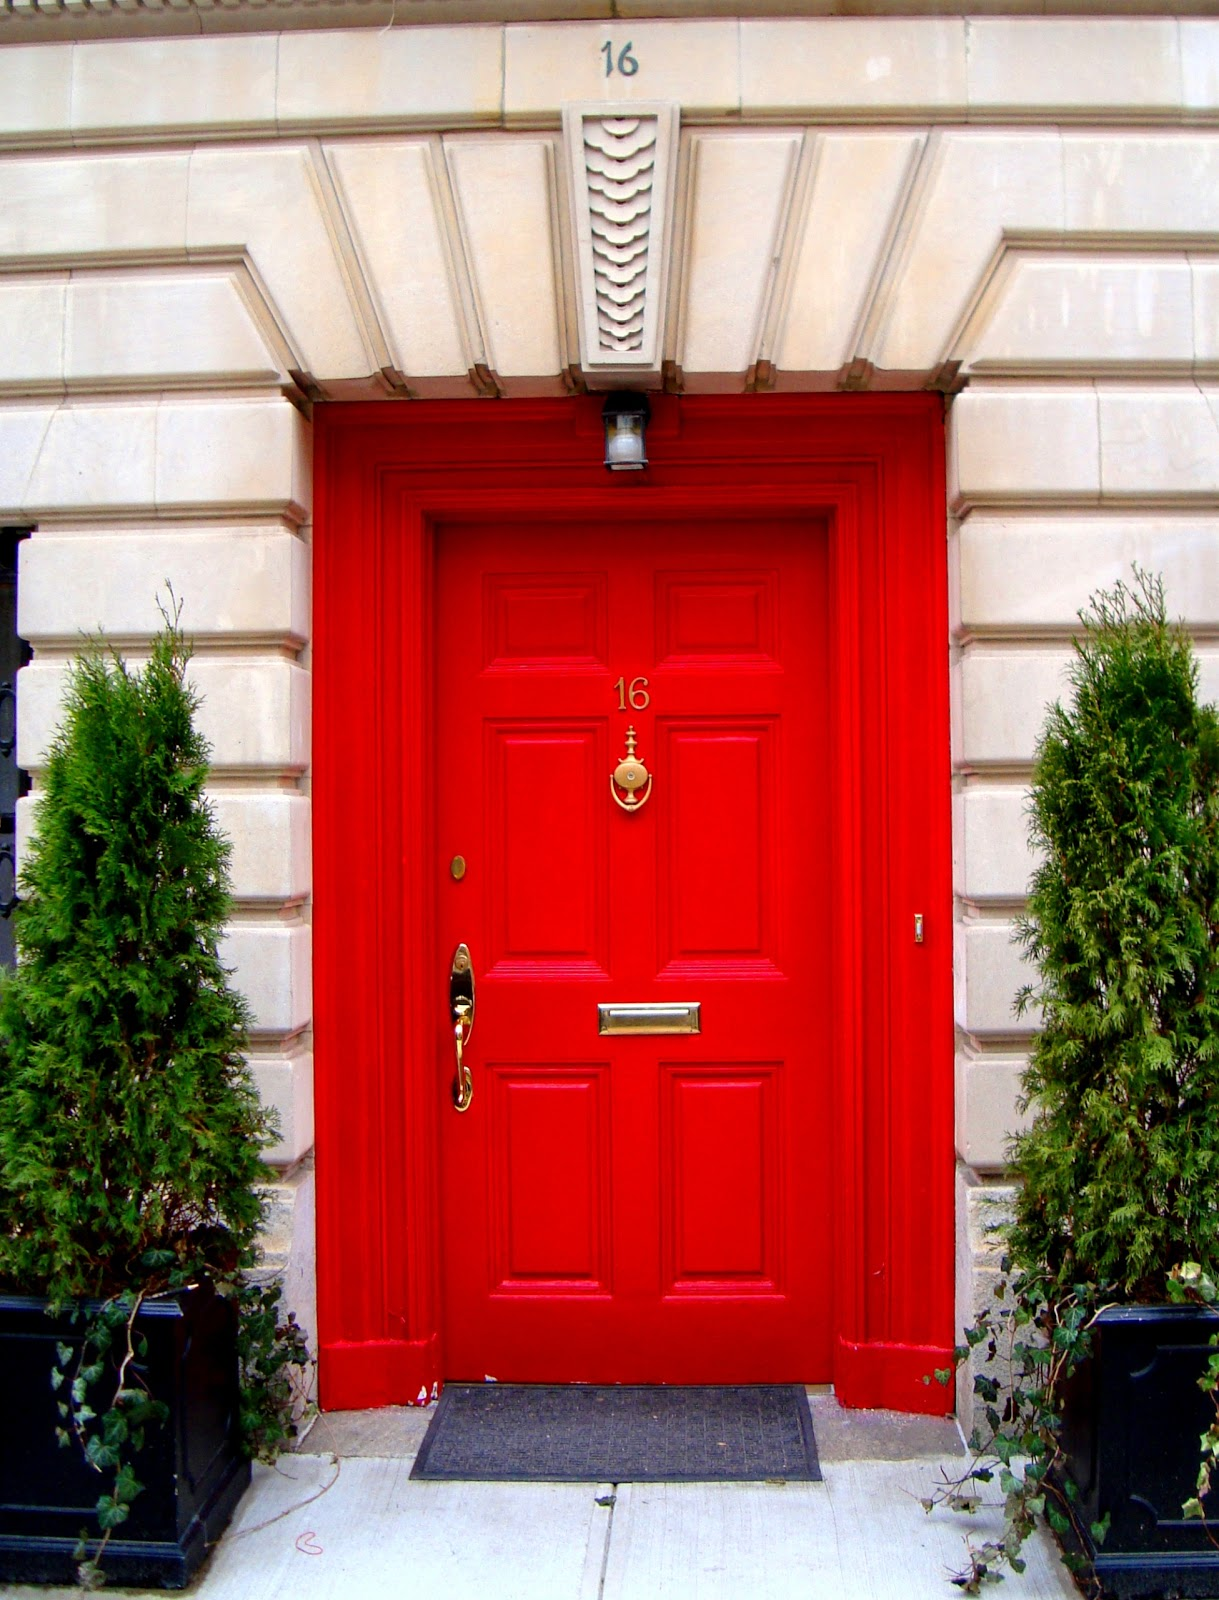 David cobb craig red doors of the upper east side for Doors for front door